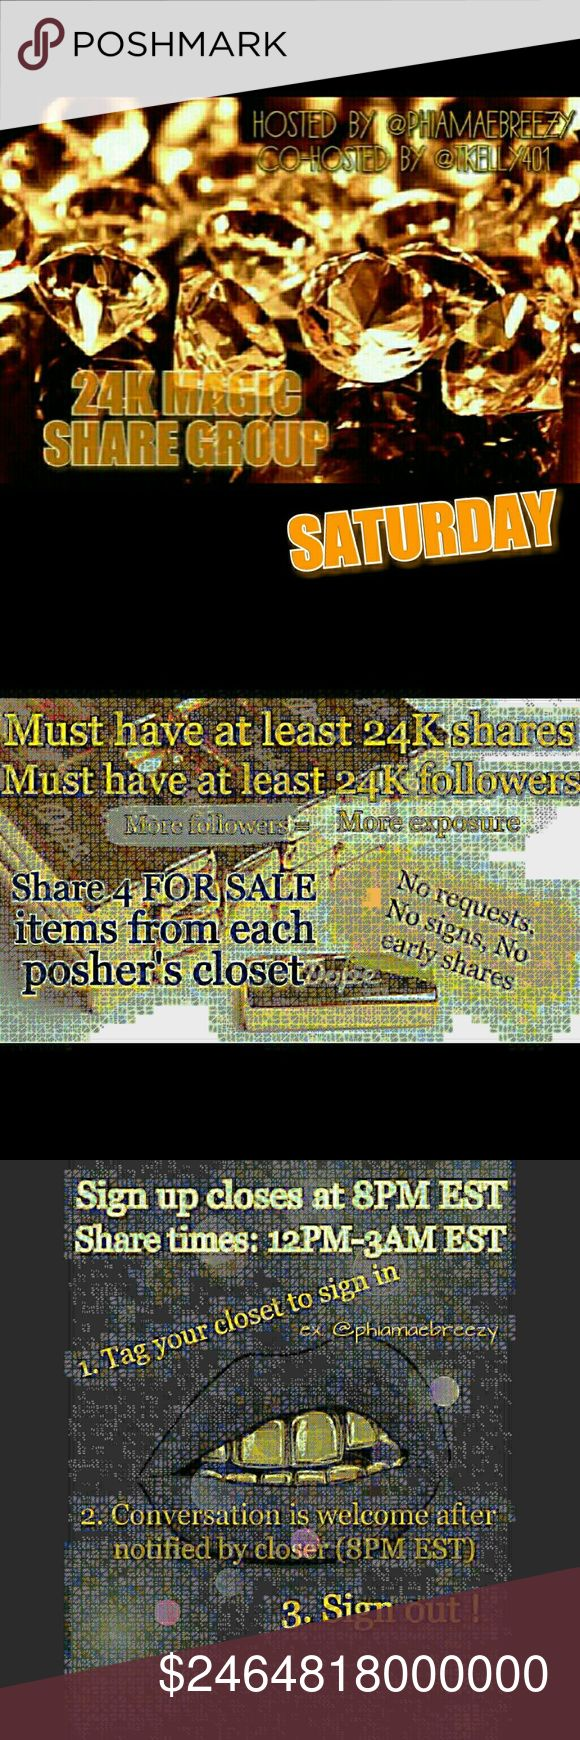 💎Sat.9/2 24K Magic share group sign in 💎Thank you for joining '24K MAGiC SHARE GROUP'  💎Share 4 FOR SALE items between 12PM-3AM EST  💎Must have AT LEAST 24K followers && 24K shares  💎NO REQUESTS - NO SiGNS PLZ  💎Closes @ 8PM EST  💎LiKE this listing for reminders  💎Place holder ex.   ***tke (last person you've shared)  💎NO COMMENTS until sign up is closed Other